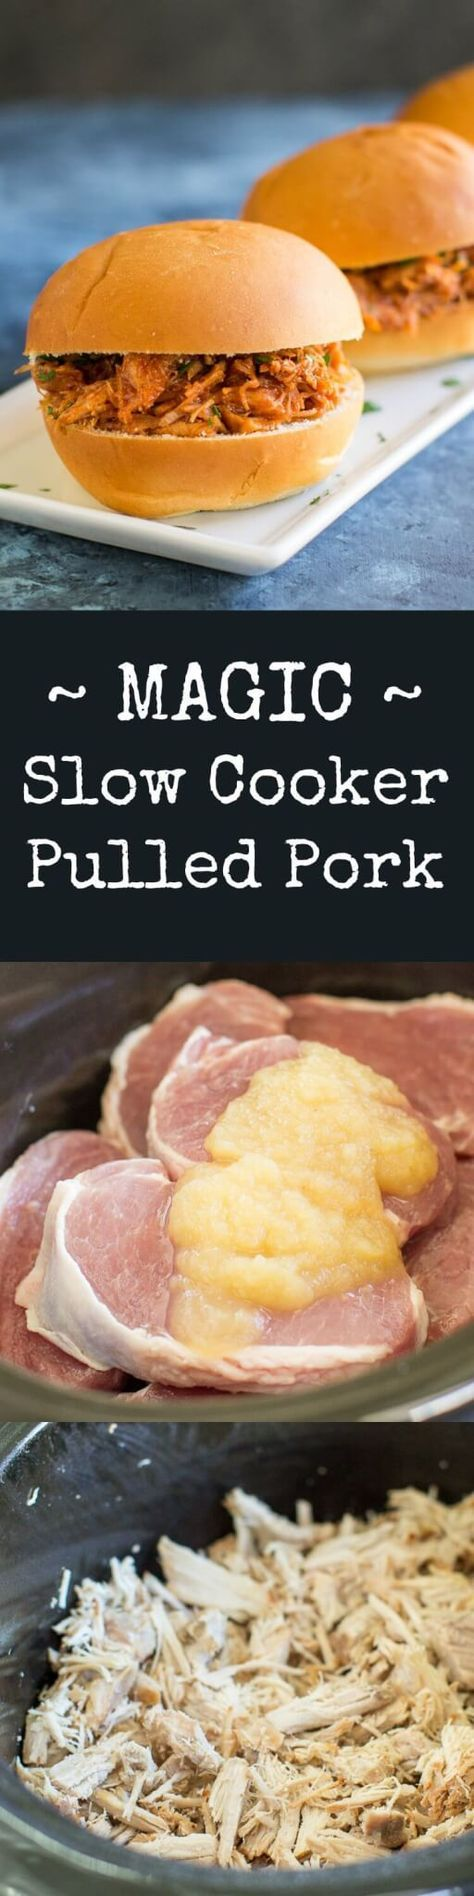 Learn the secret ingredient for Slow Cooker Pulled Pork so tender, it falls apart! Just two ingredients total (plus your favorite sauce) and no browning needed!